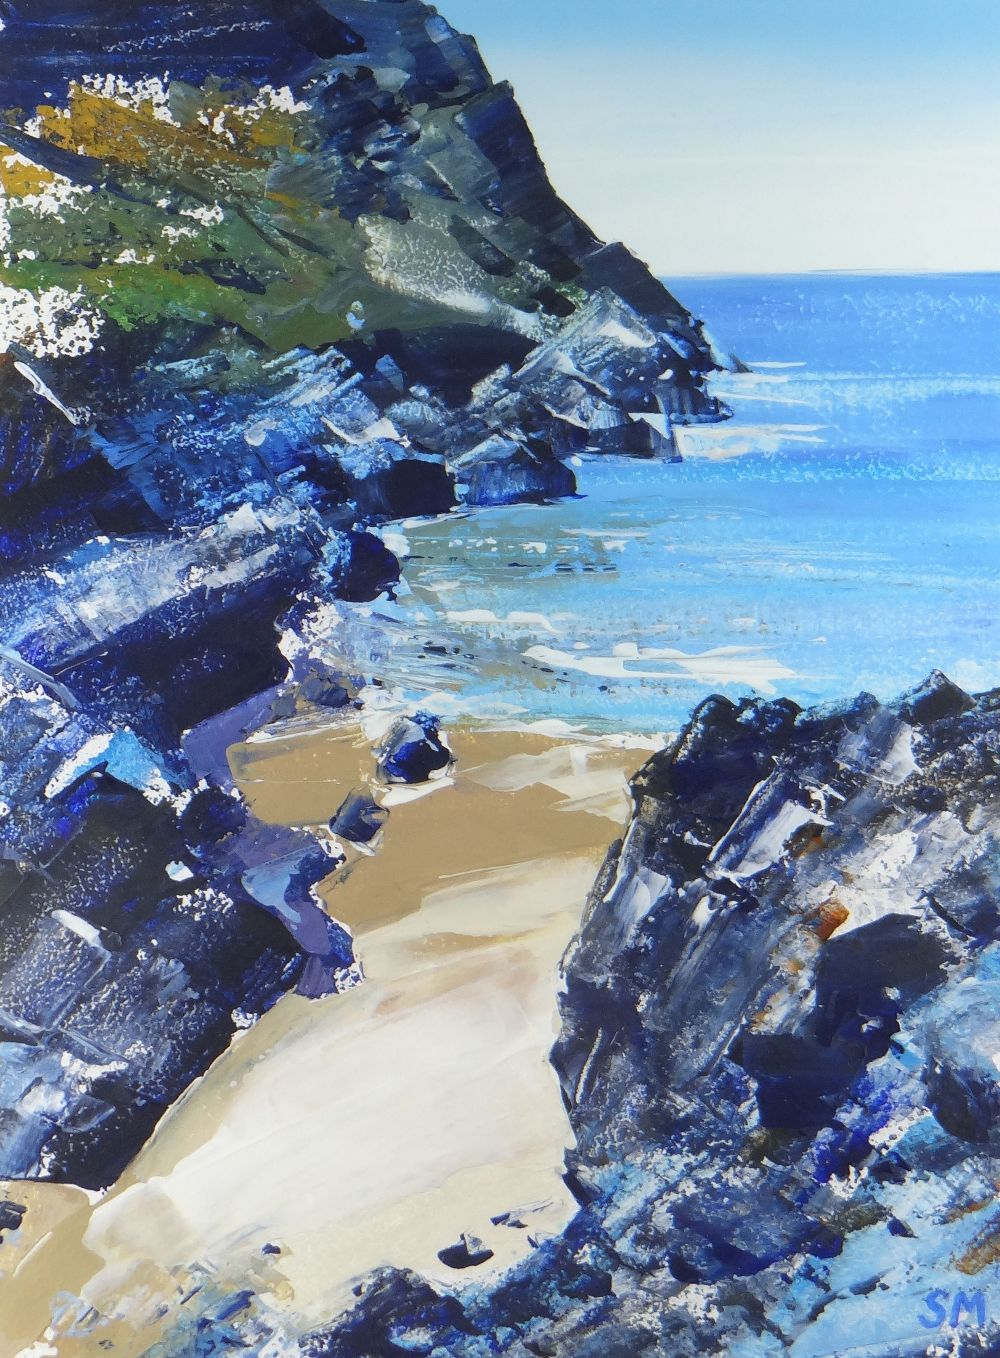 SIAN MCGILL oil - sandy cove with rocky cliffs, entitled verso on Albany Gallery label 'Mewslade,